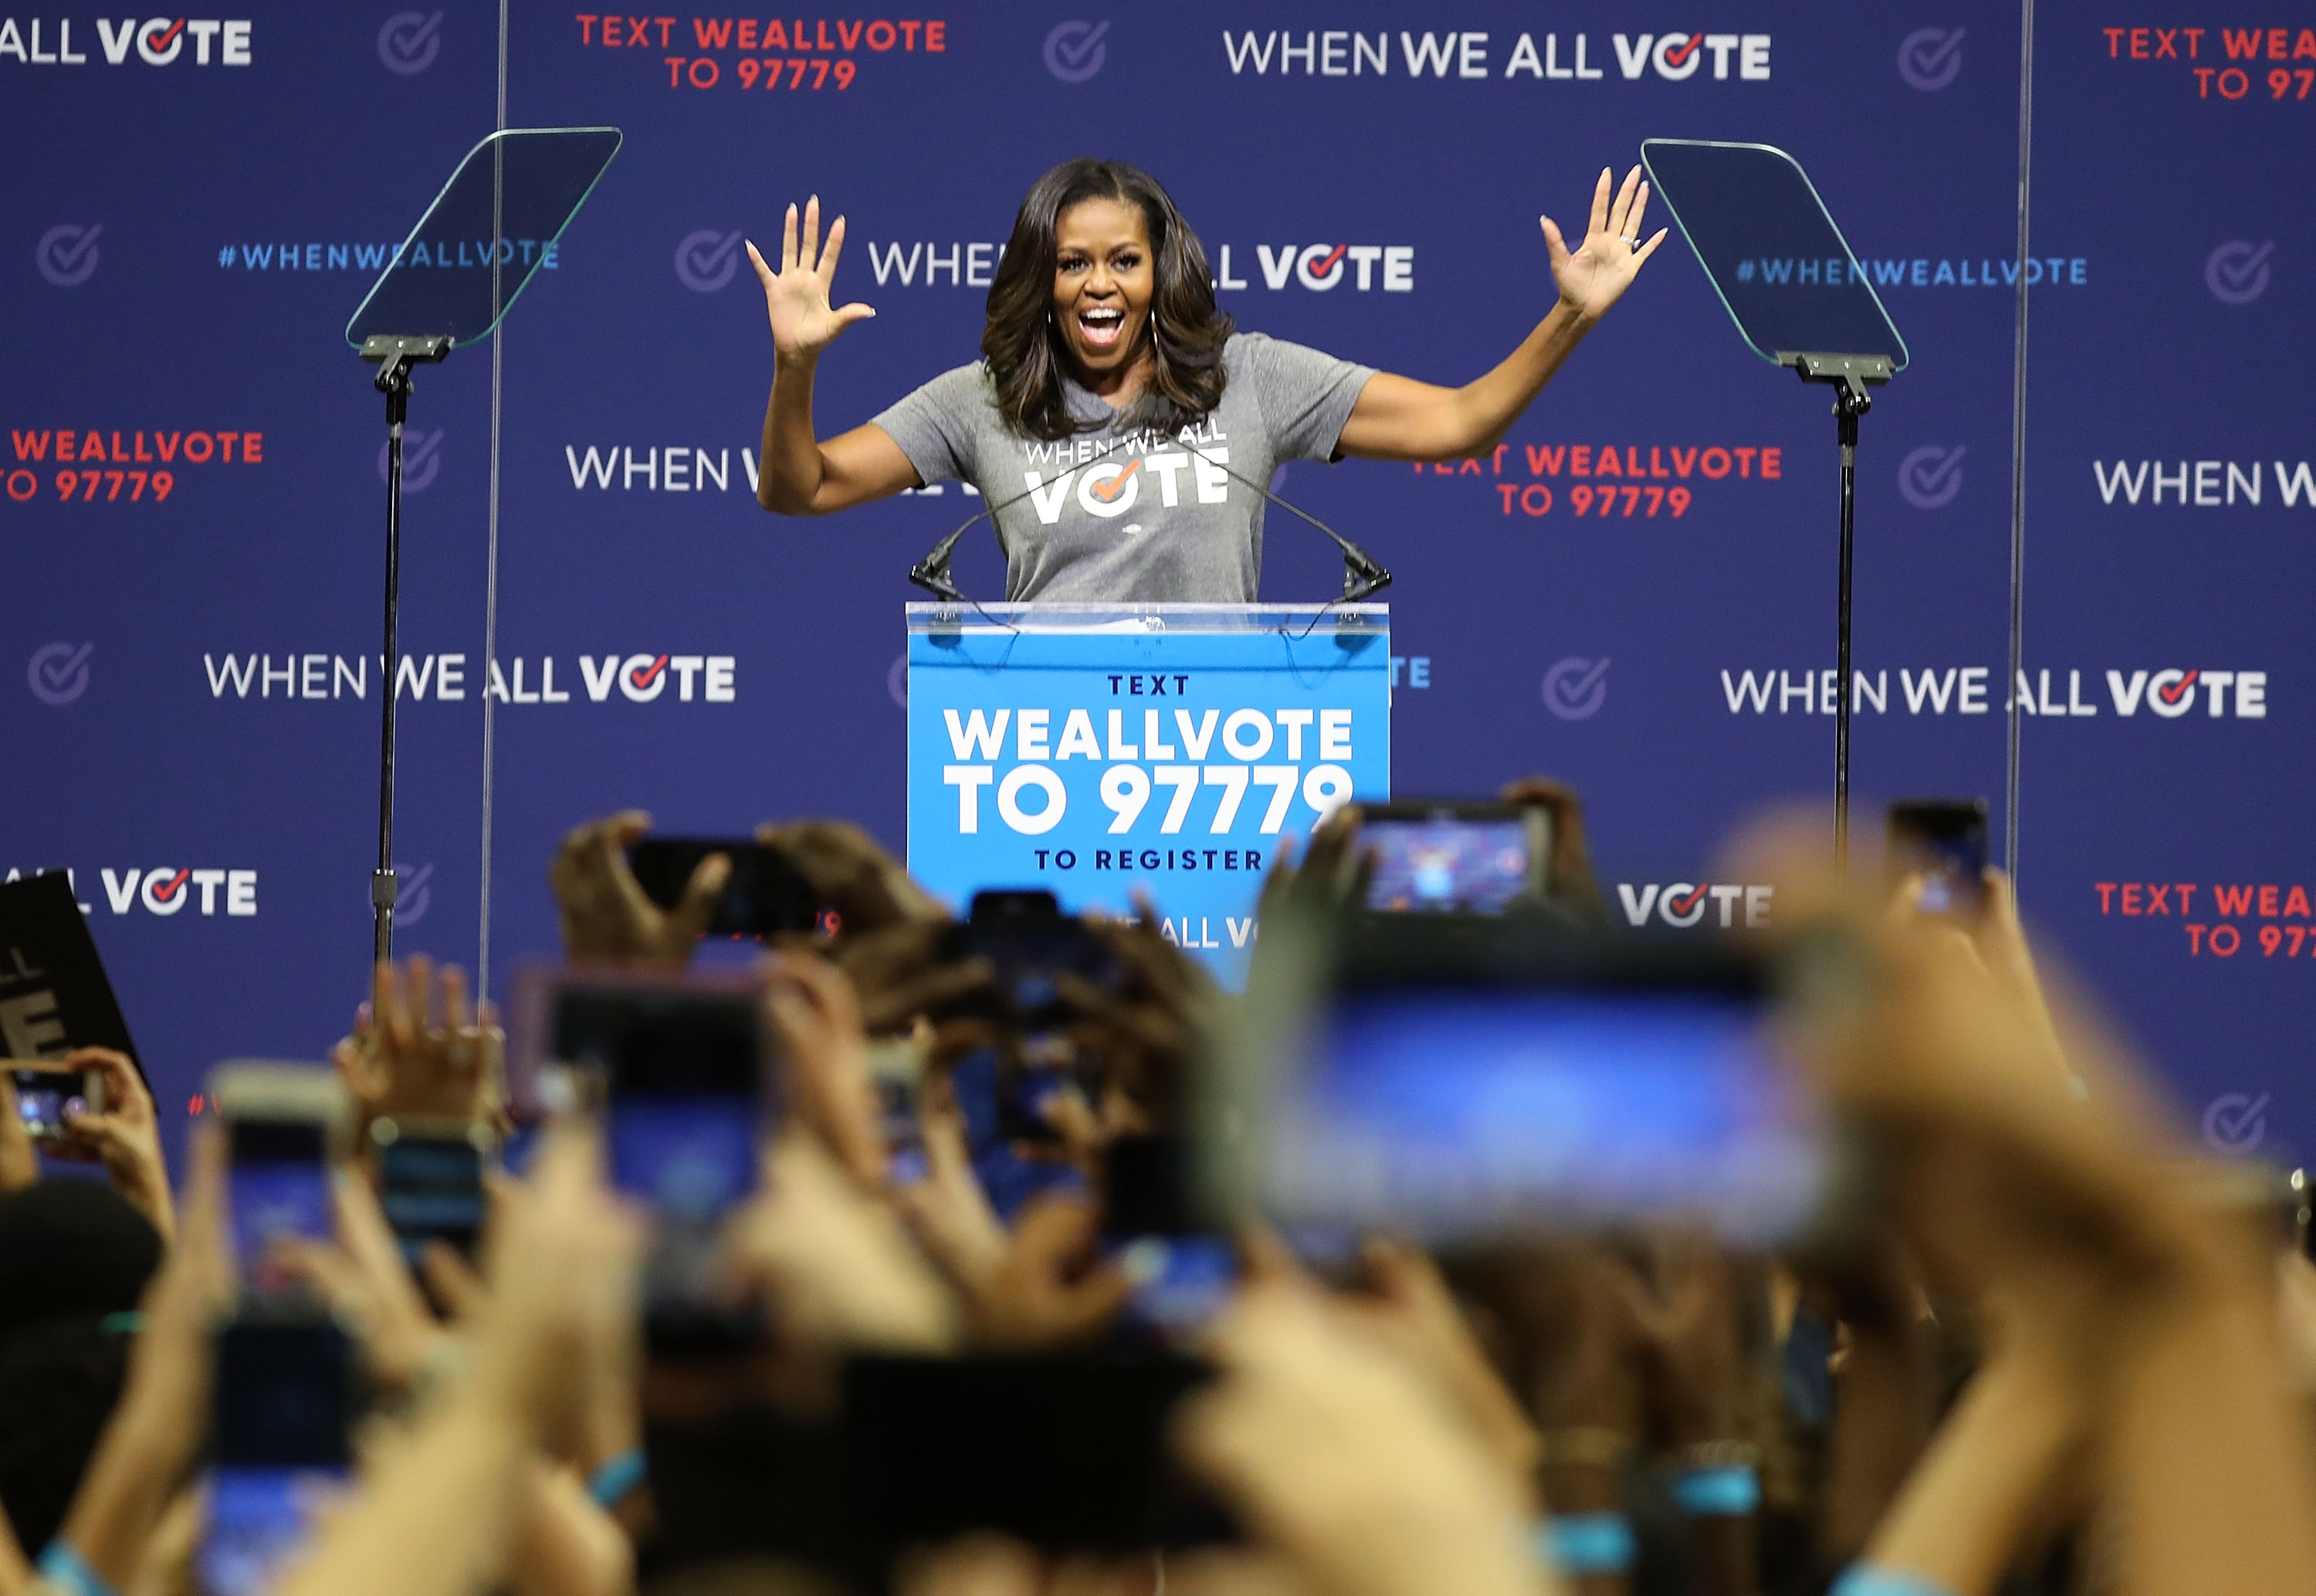 Michelle Obama Addresses Voter Registration Rally In Florida